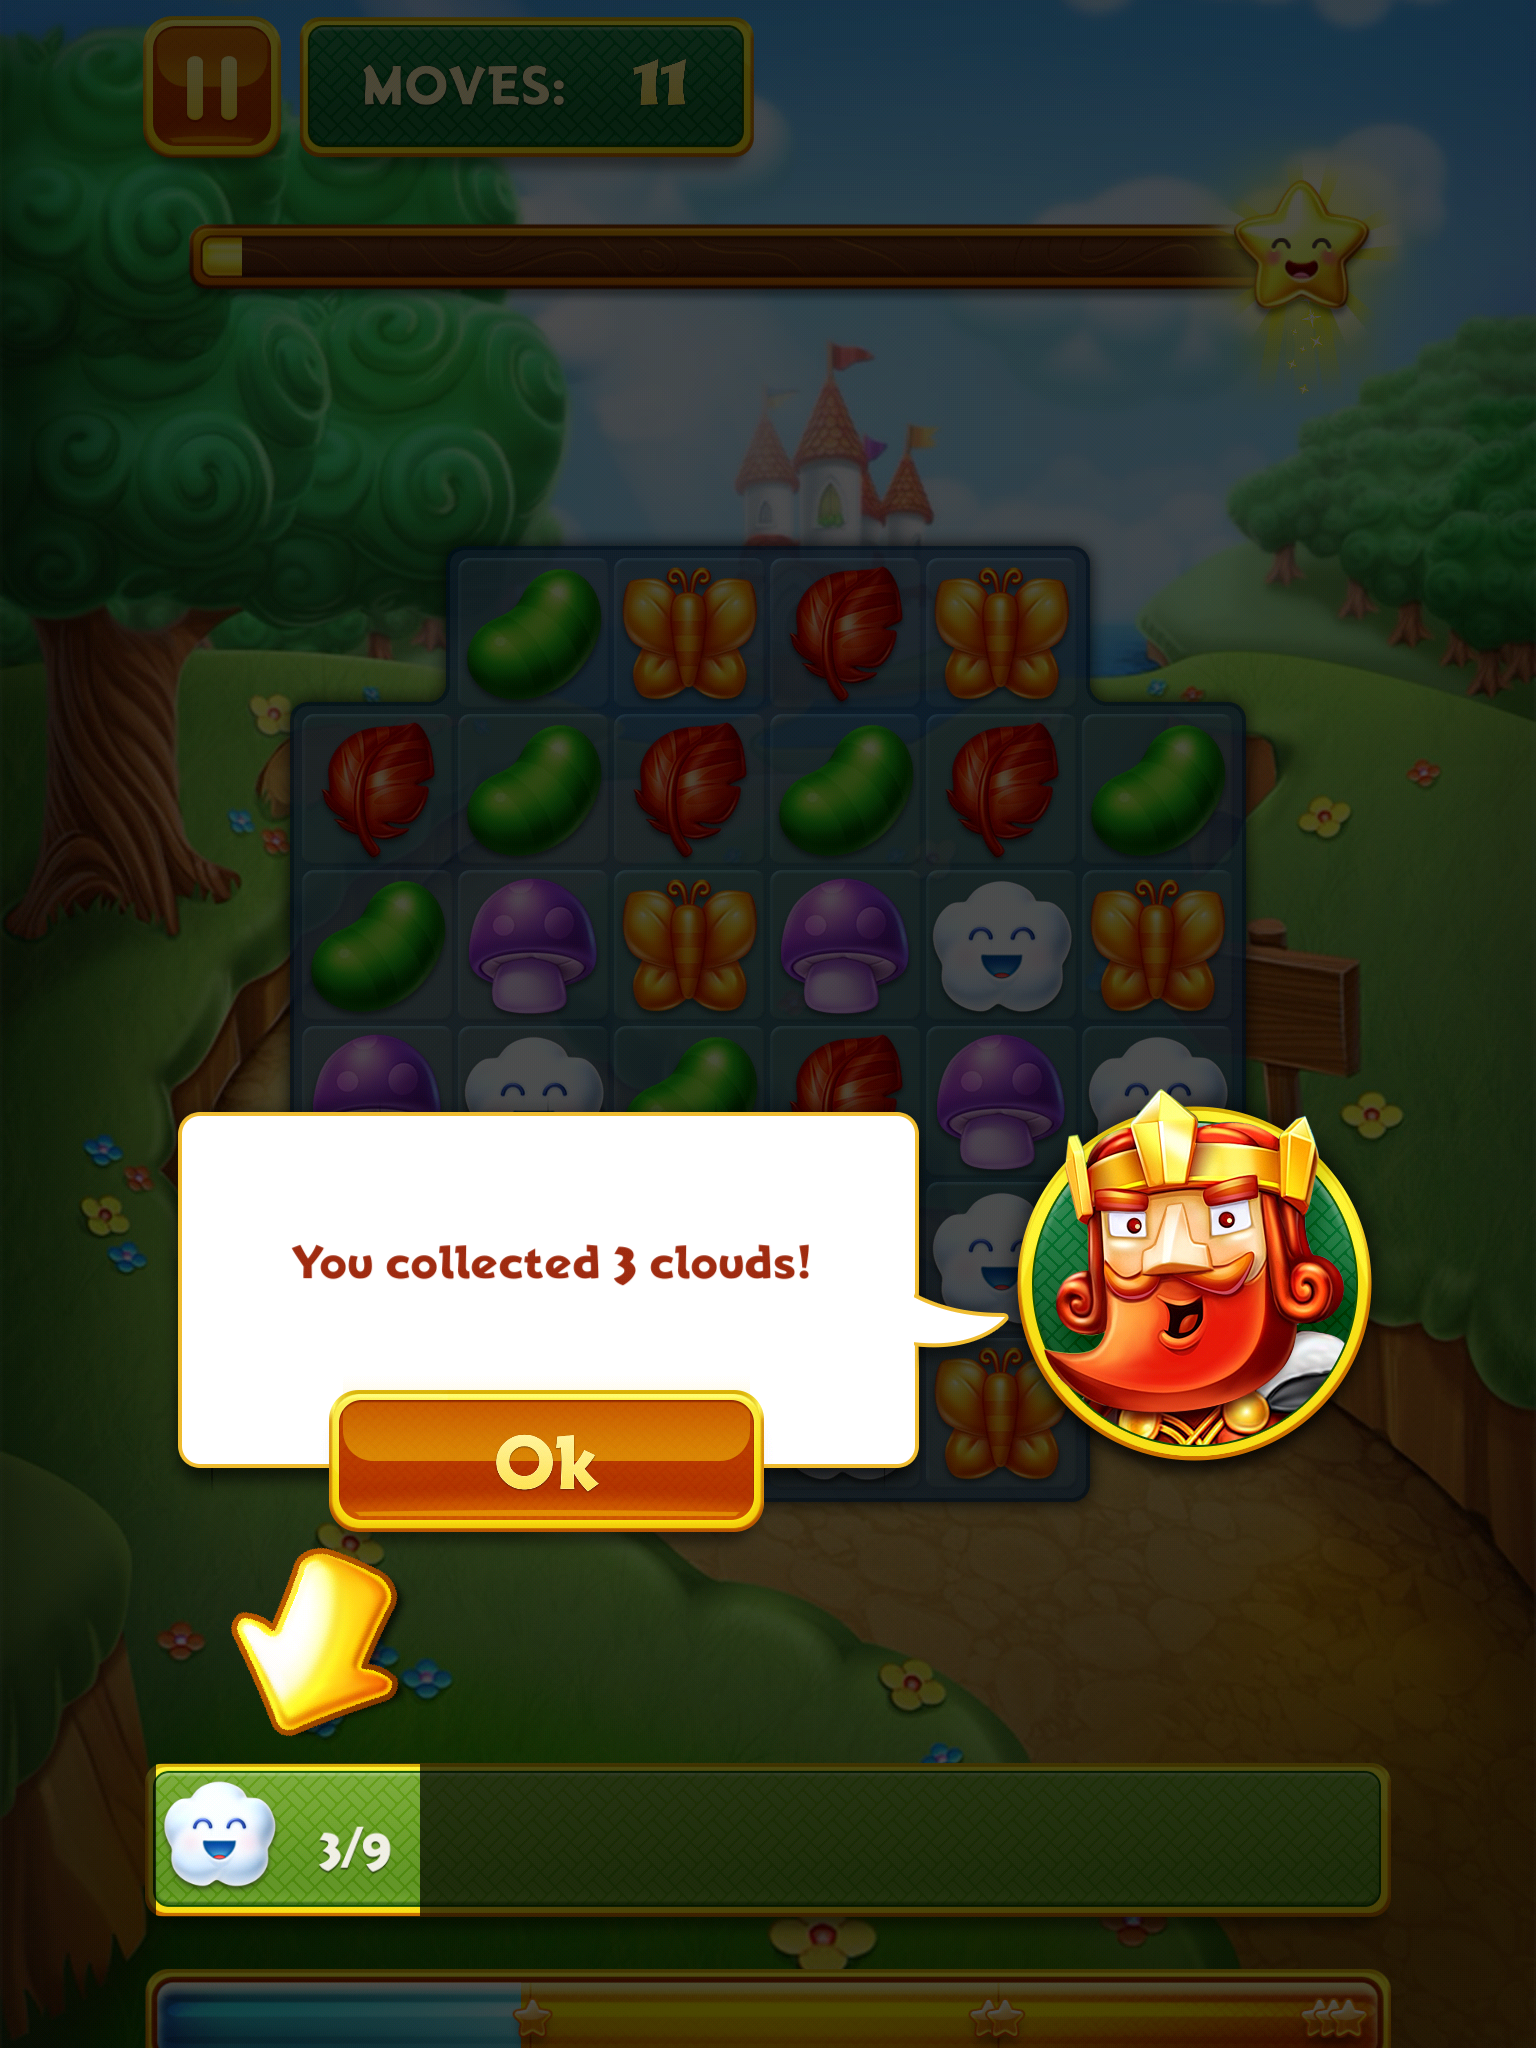 Ftue loading login tutorial screenshots ui tutorial games inspiration provides mobile game ui screenshots here you can find tutorial ui for angry birds clash of clans hay day candy crush saga and many baditri Choice Image